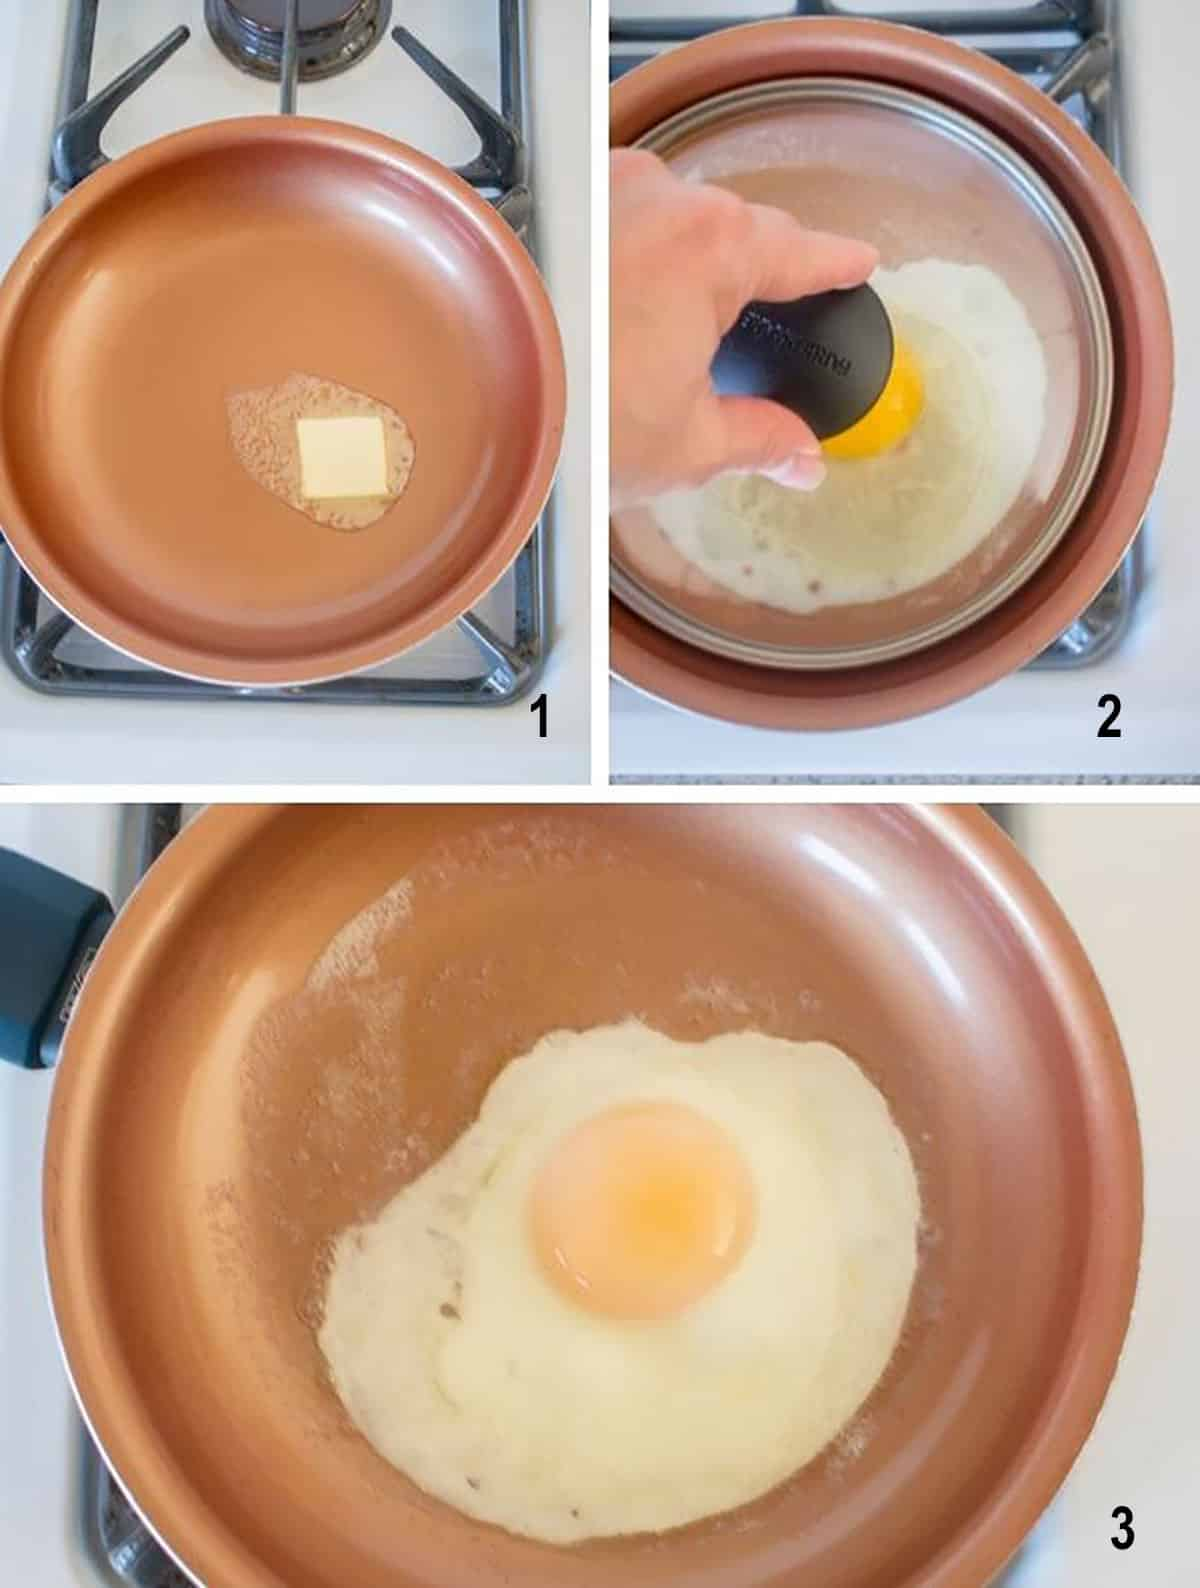 butter in pan, lid over egg in pan, basted egg in pan